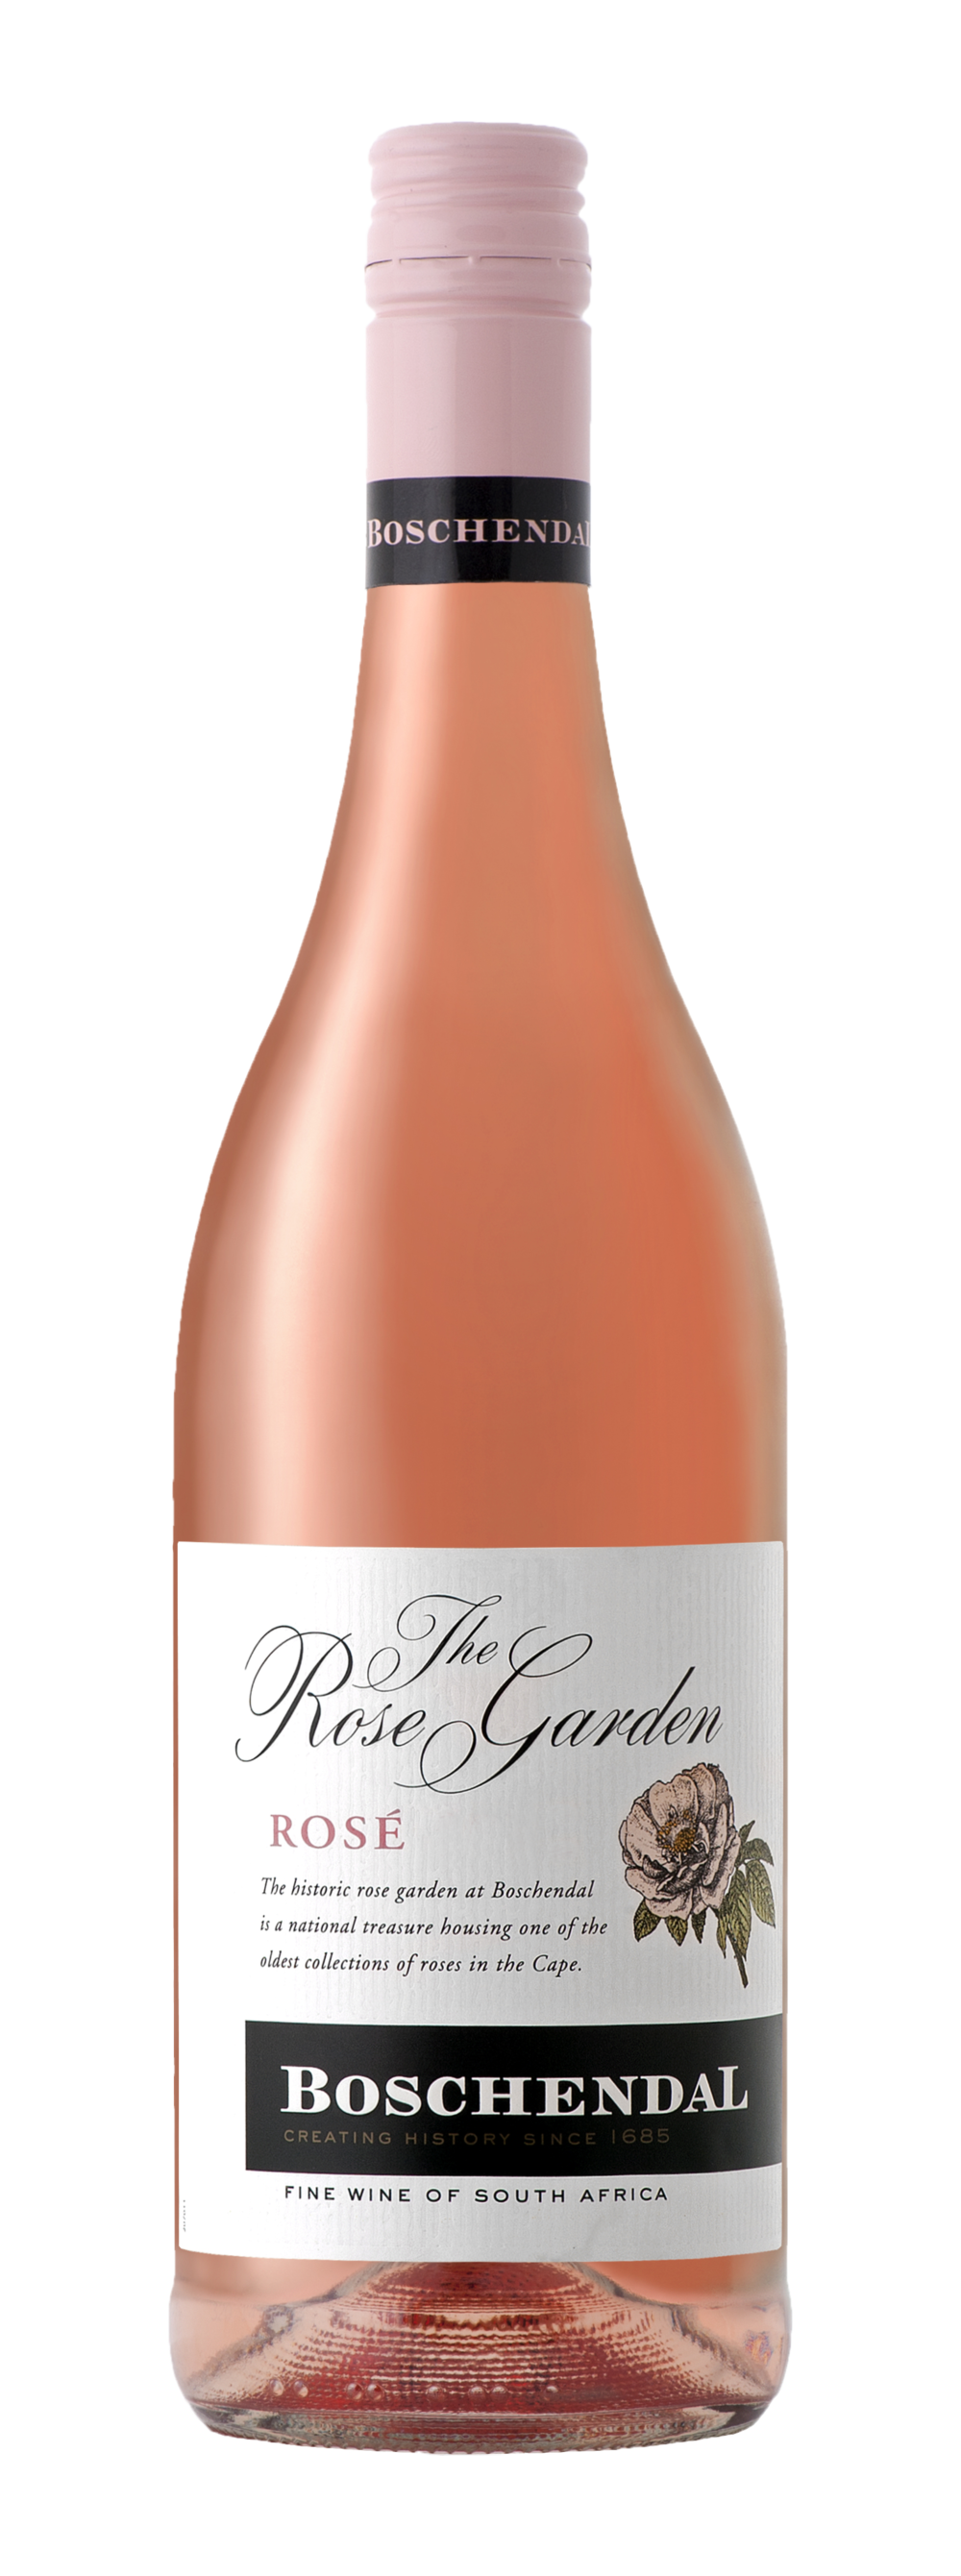 Bottle shot Boschendal The Rose Garden 2016.png